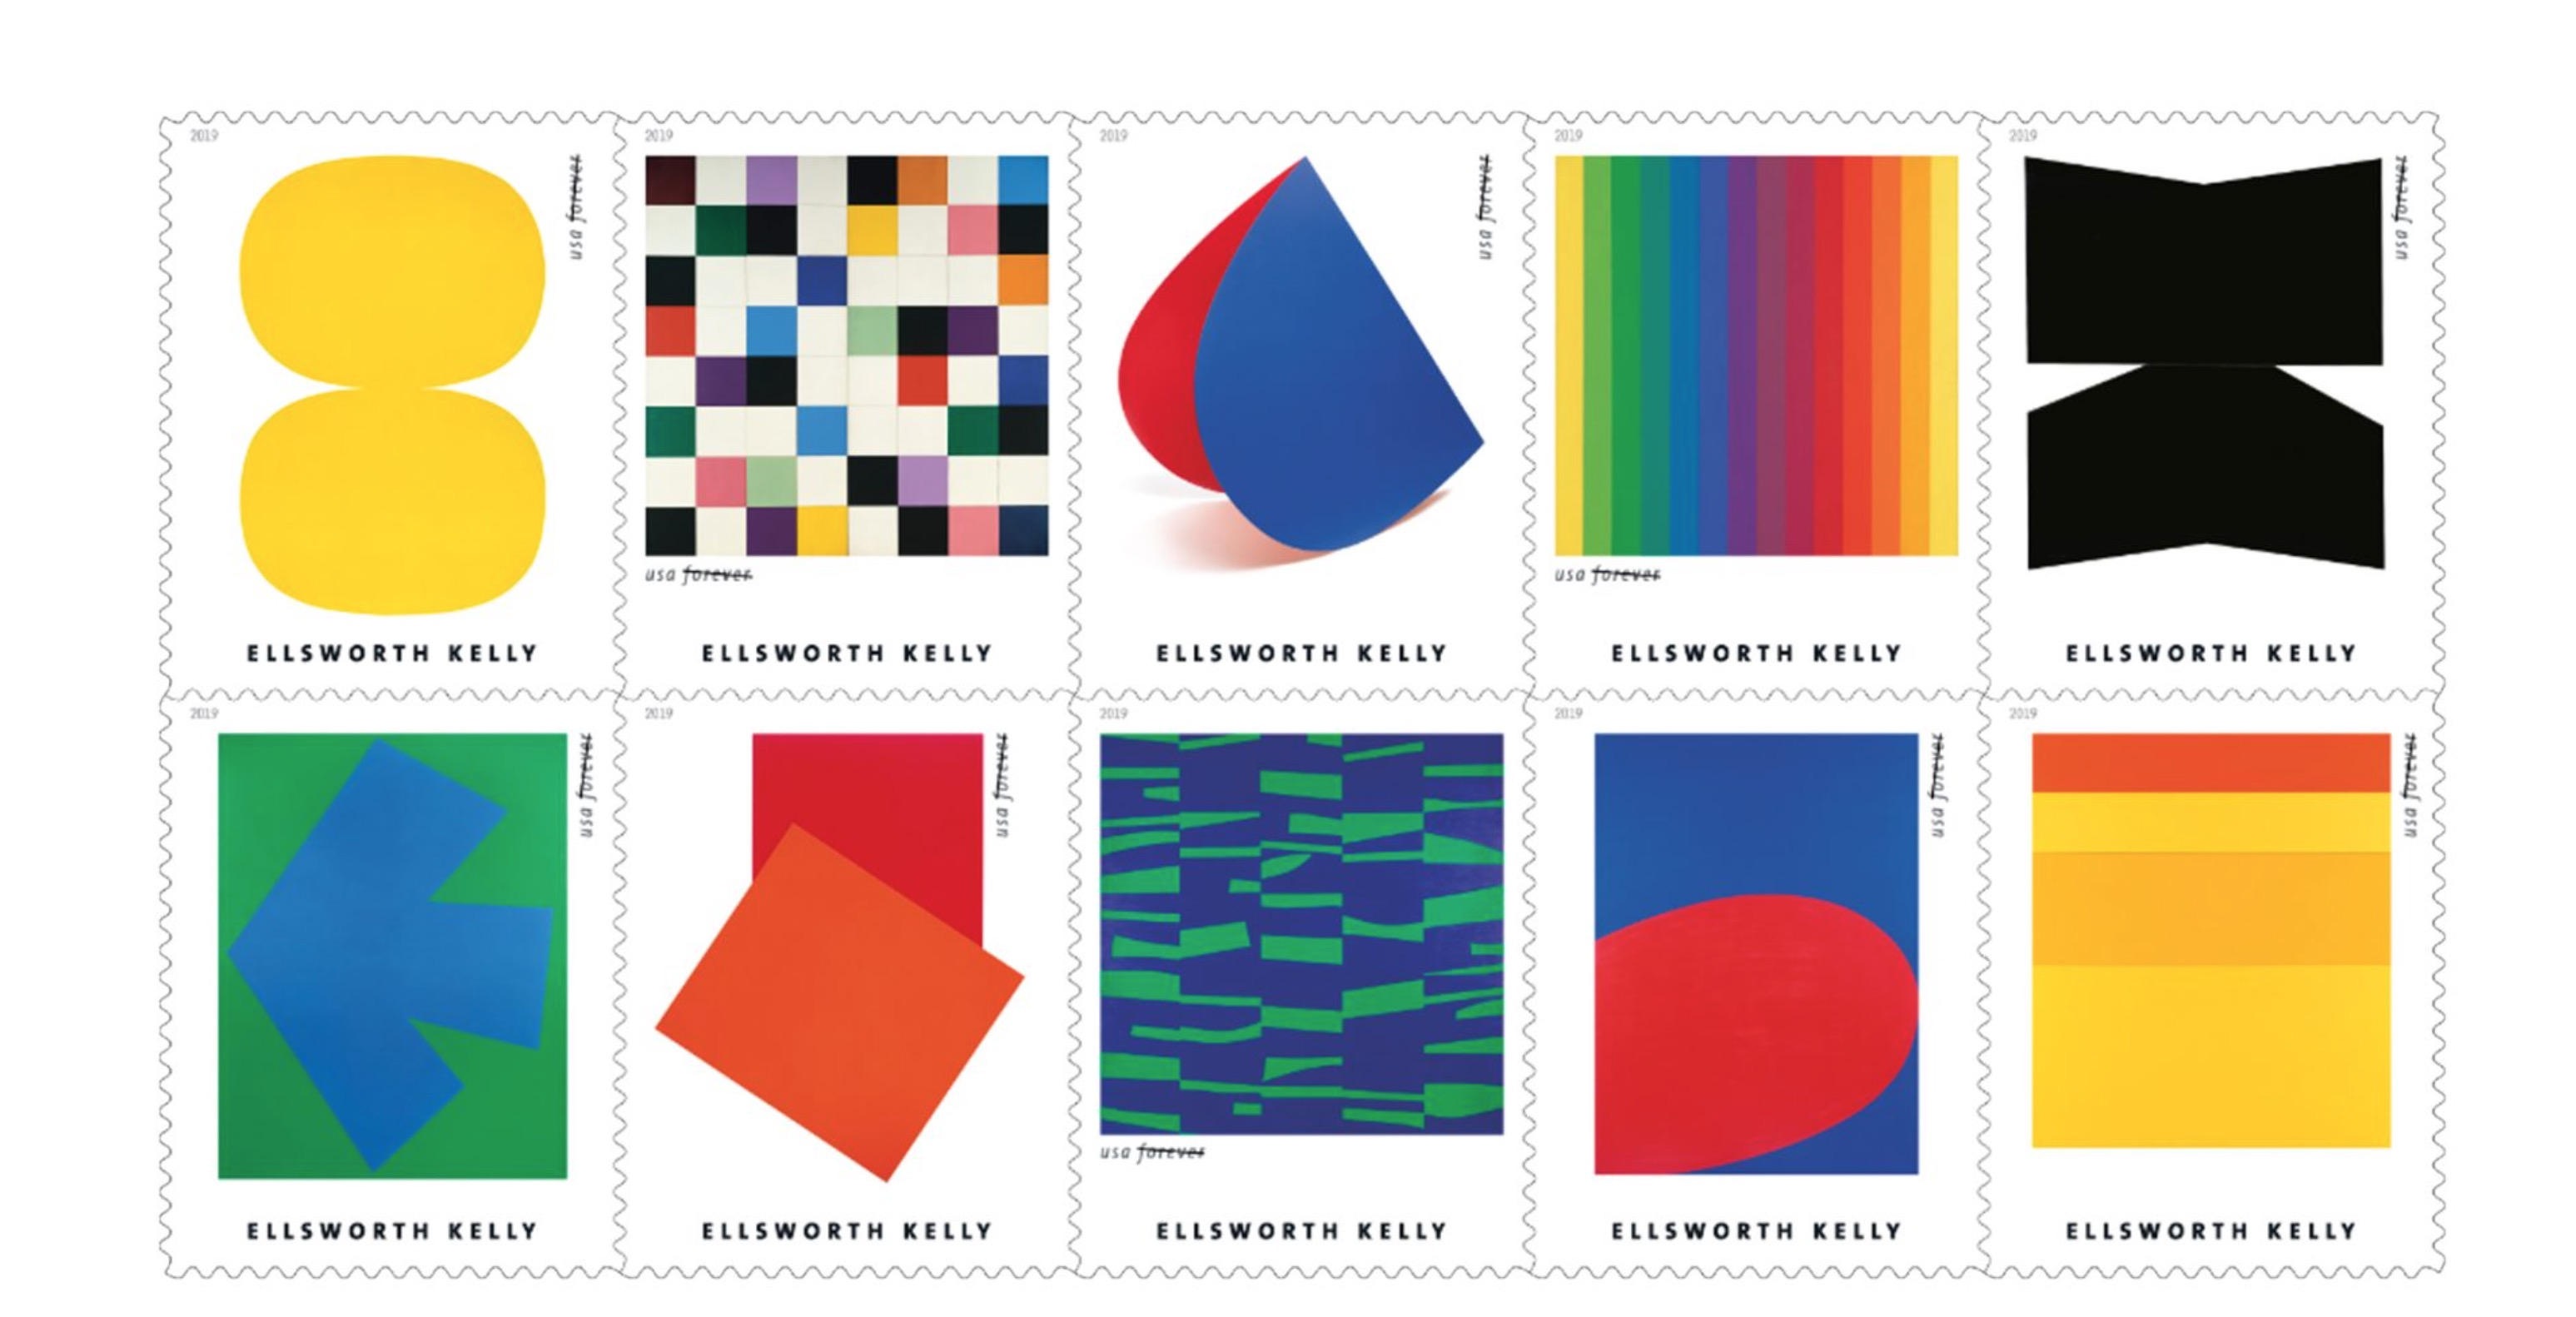 Here's your chance to own an Ellsworth Kelly for just 55 cents